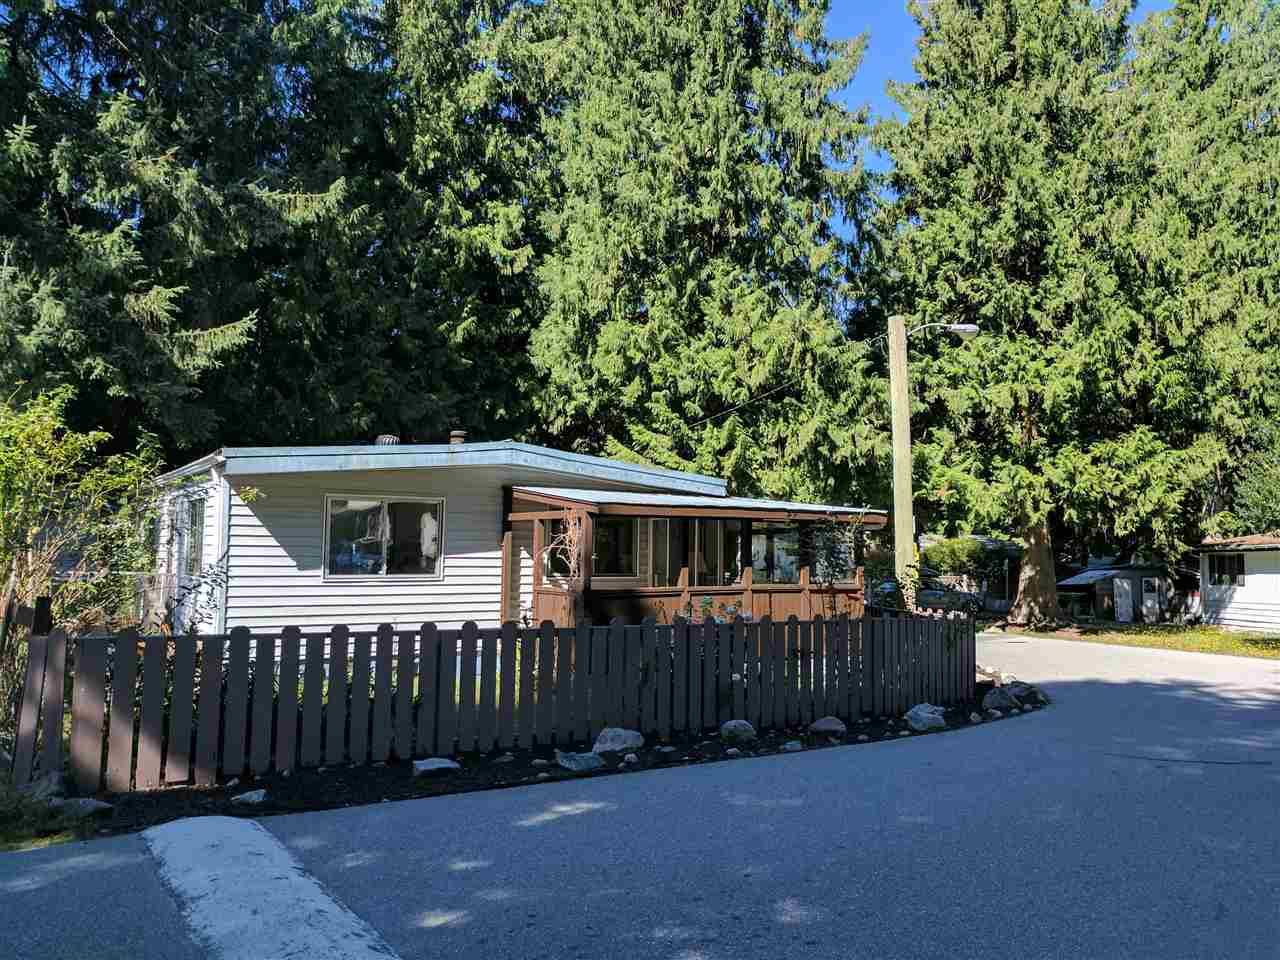 Large fantastic corner lot for this very well priced 3 bdrm home in central Squamish's Timbertown Estates manufactured home park. Surrounded by big beautiful mature trees, this is the best priced real estate opportunity in town. In addition, there is a wired workshop and lots of extra storage. Enjoy the wrap around sun room and deck as well as a large foyer/laundry room. Additional features include newer appliances, spacious bedrooms, parking for up to 5-6 vehicles/RV/boat and lots of windows view the beautiful natural landscape. Please call the listing realtor to set up your viewing appointment. Thank you for your interest.